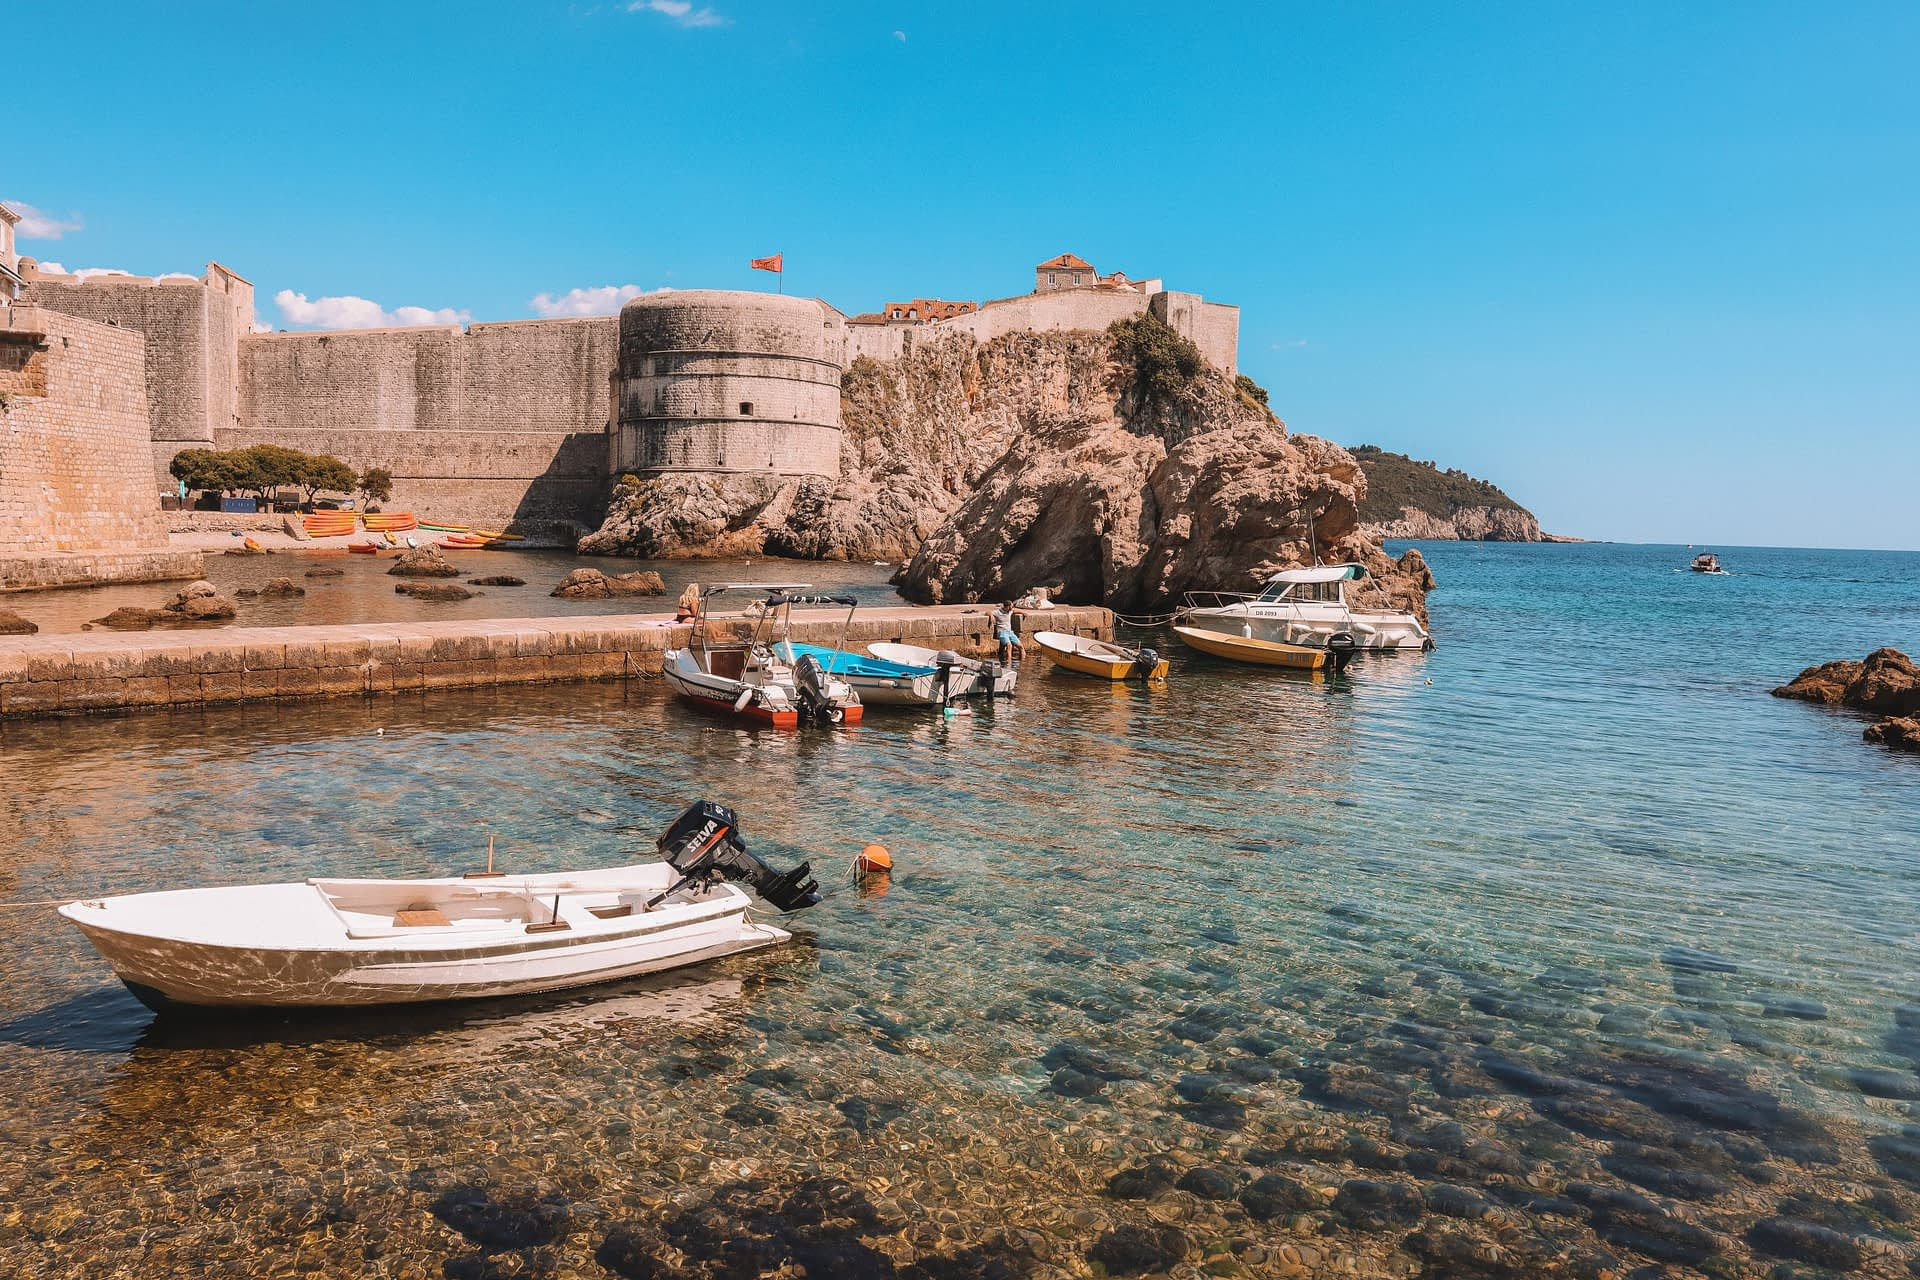 Boats in the ocean and a castle in the background. What to do in Dubrovnik.